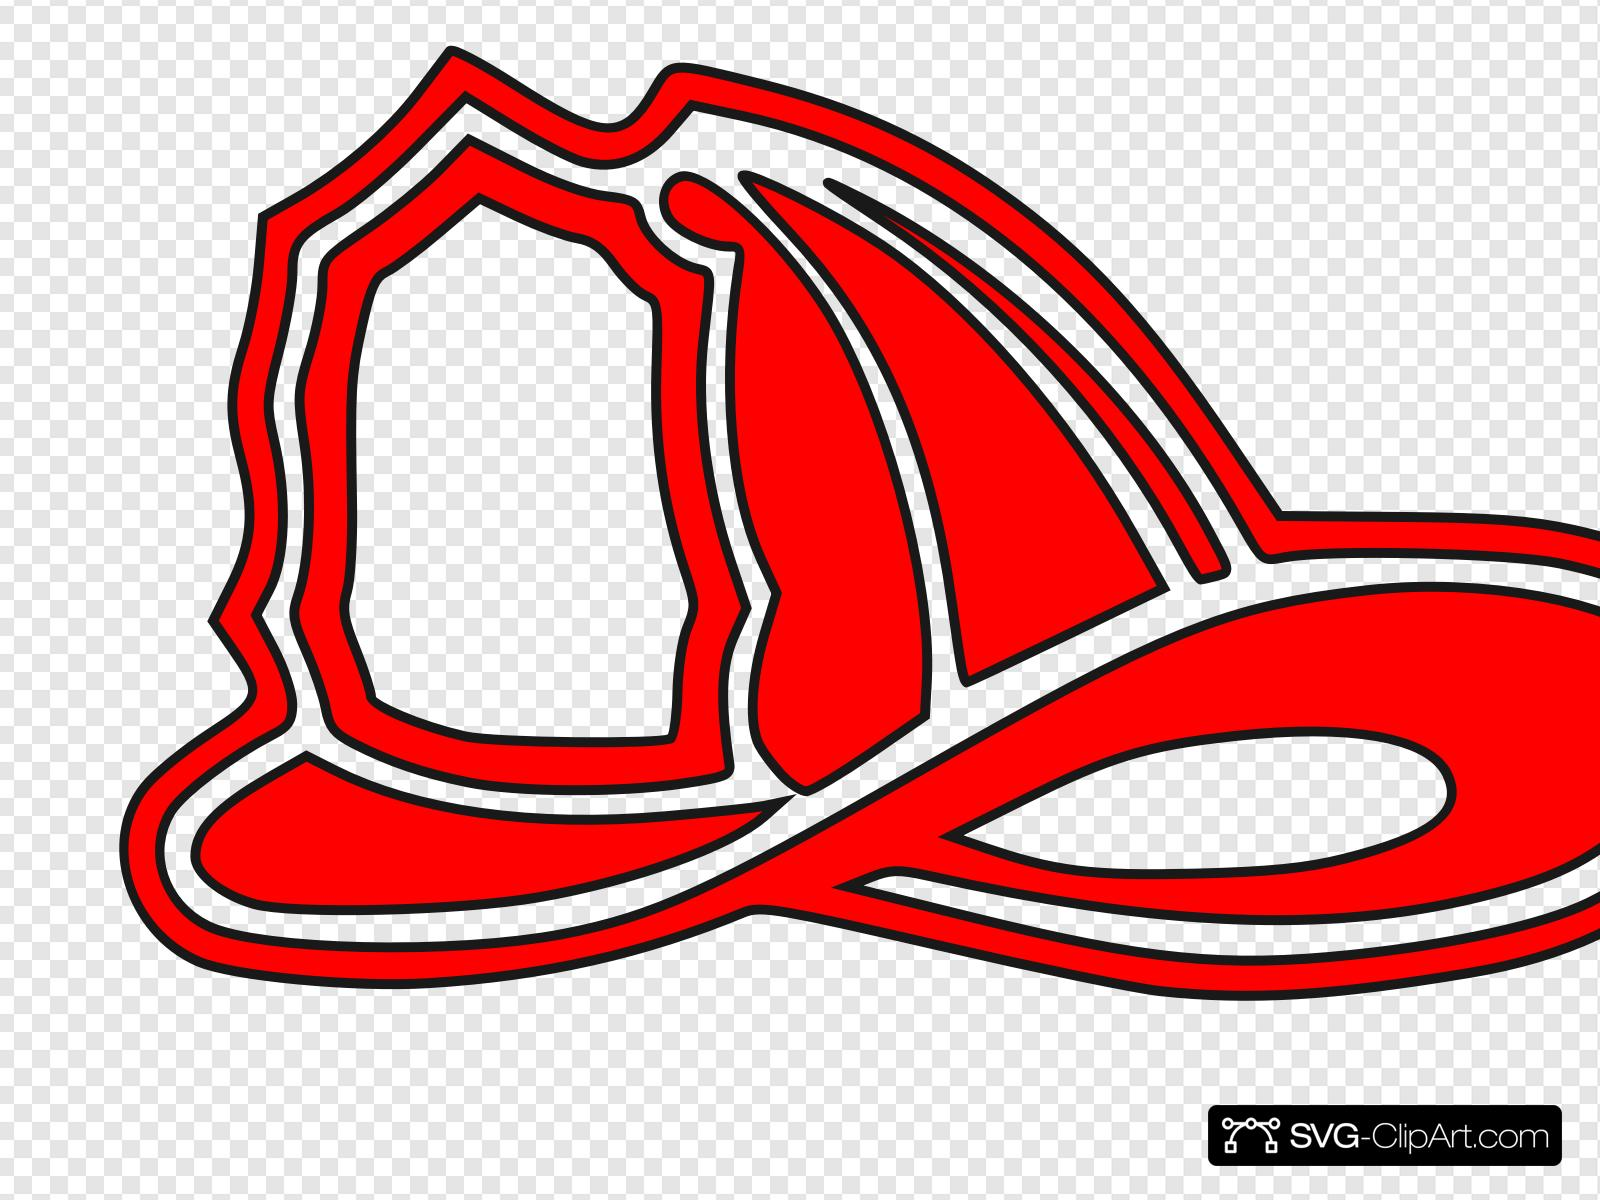 Red Fire Helmet Clip art, Icon and SVG.